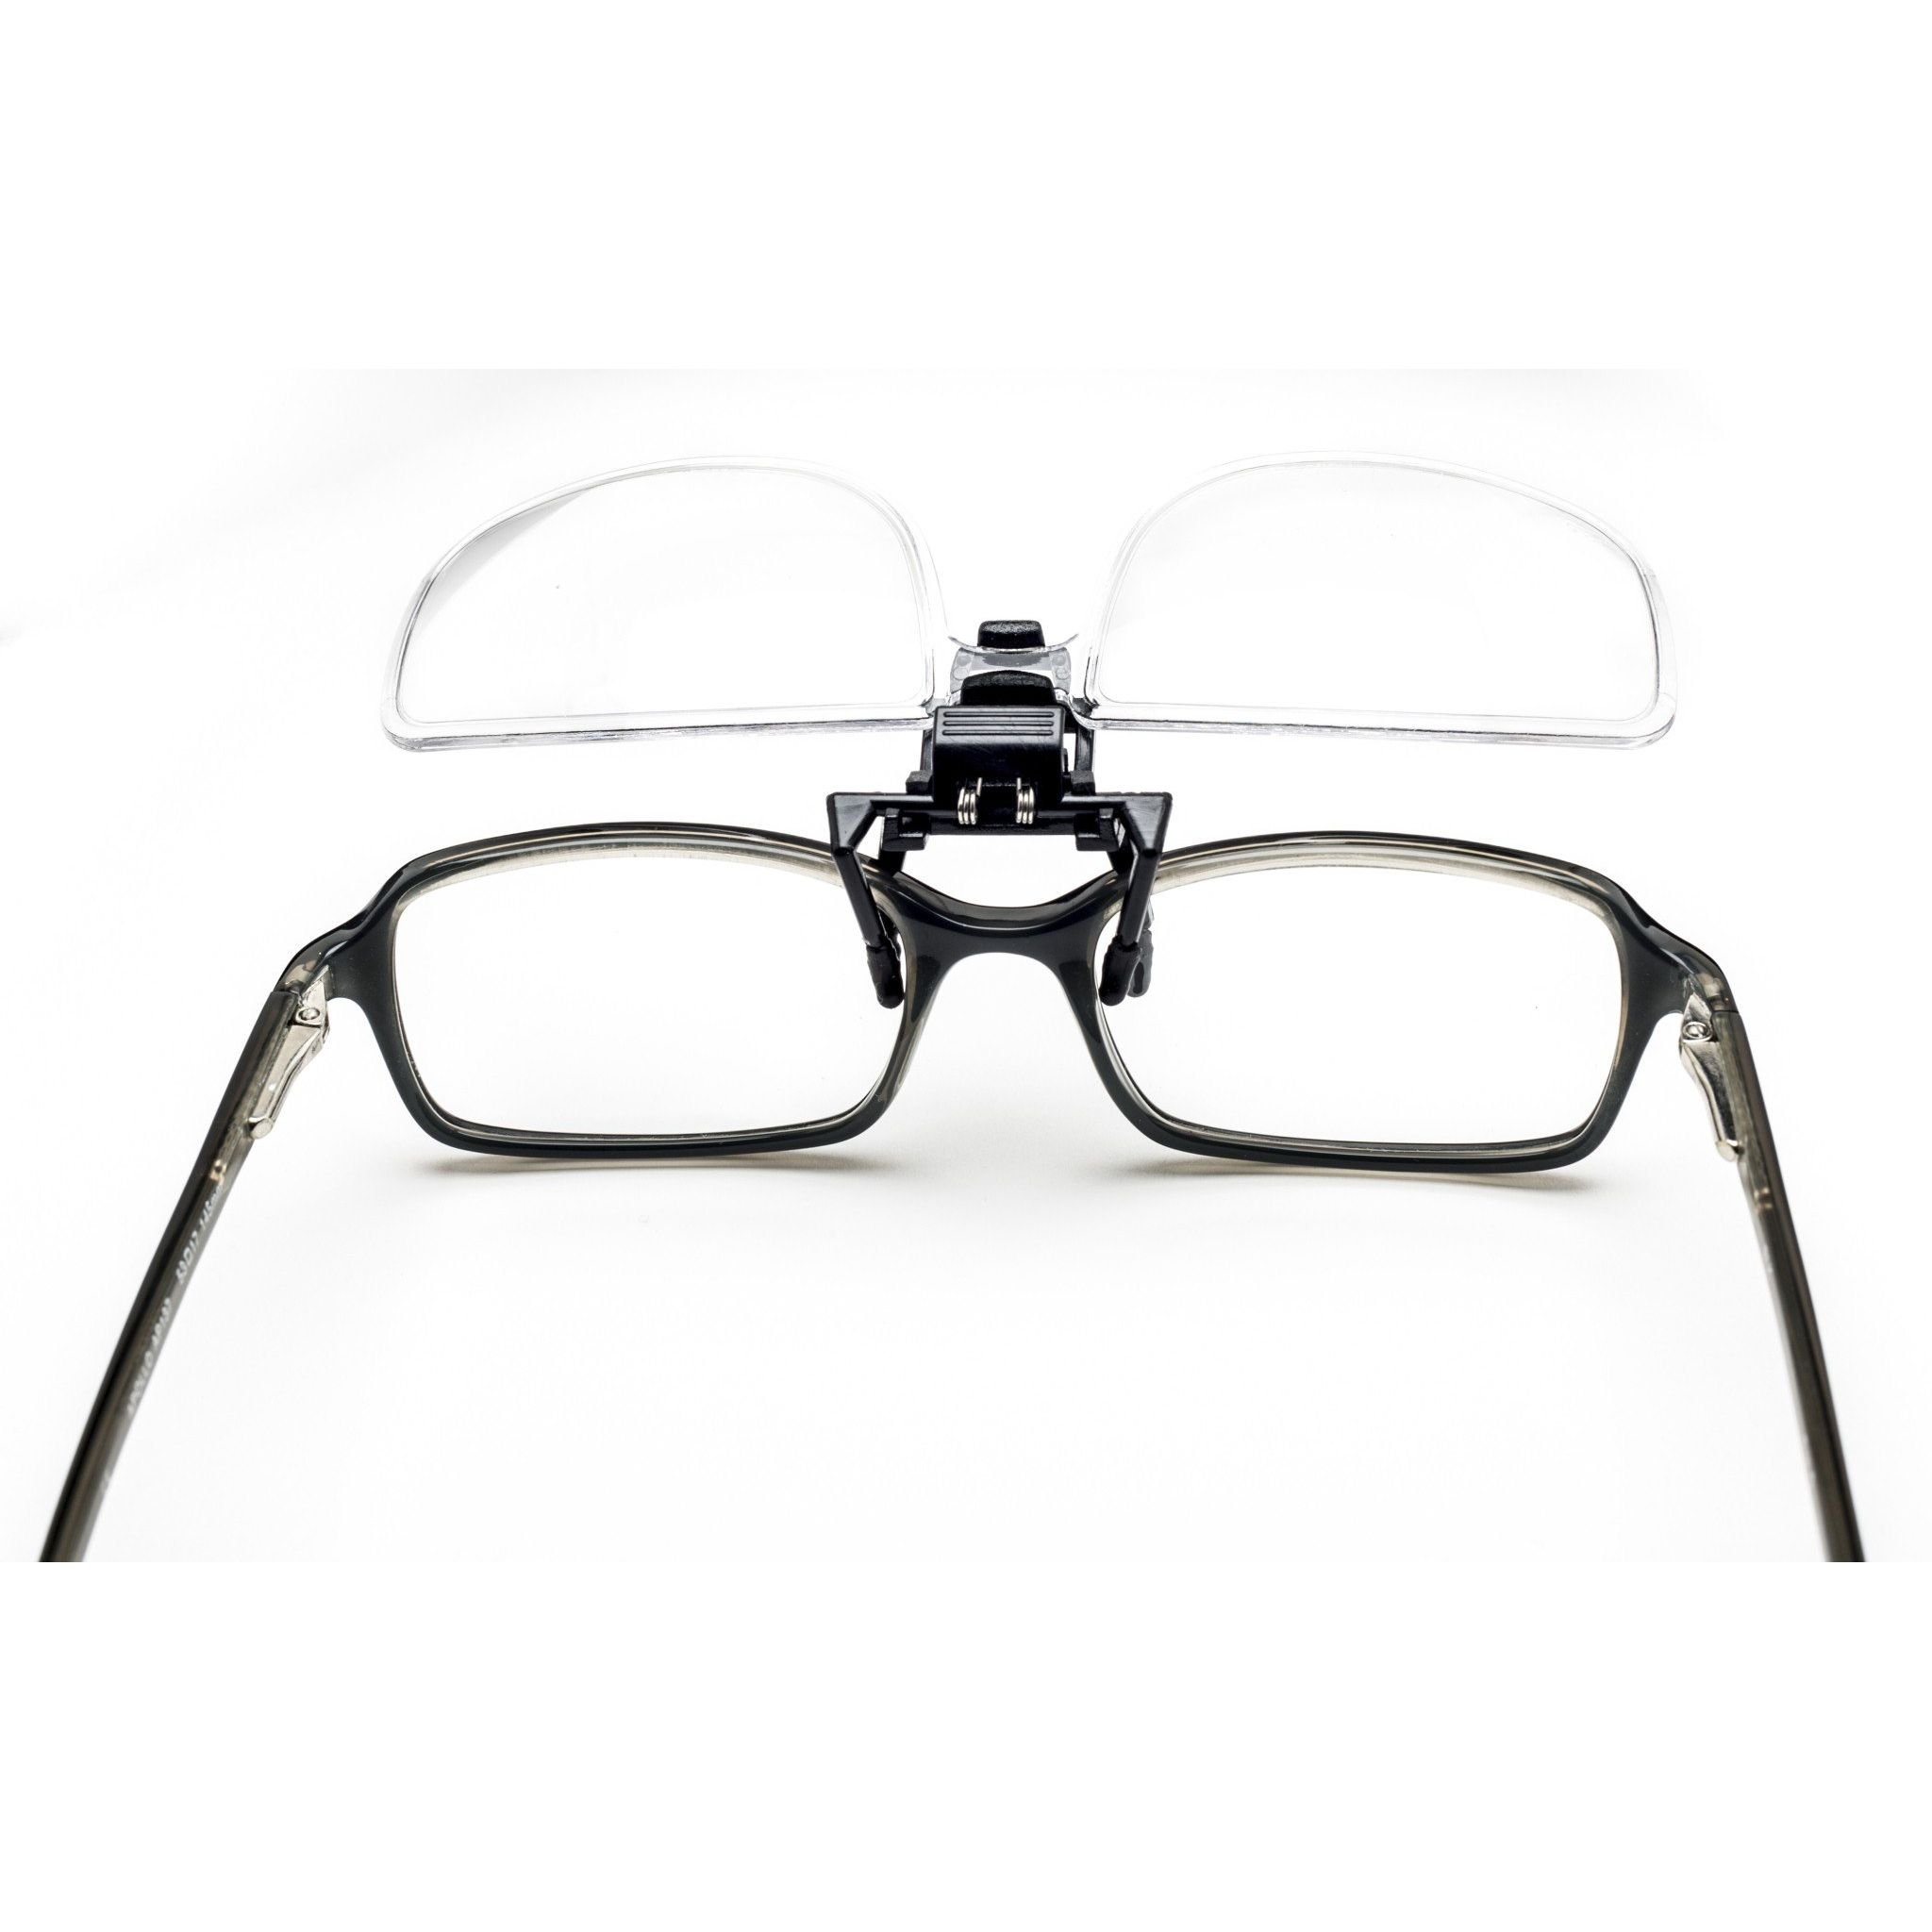 48d8306031c2 Clip-On Magnifying Reading Glasses - RX Safety